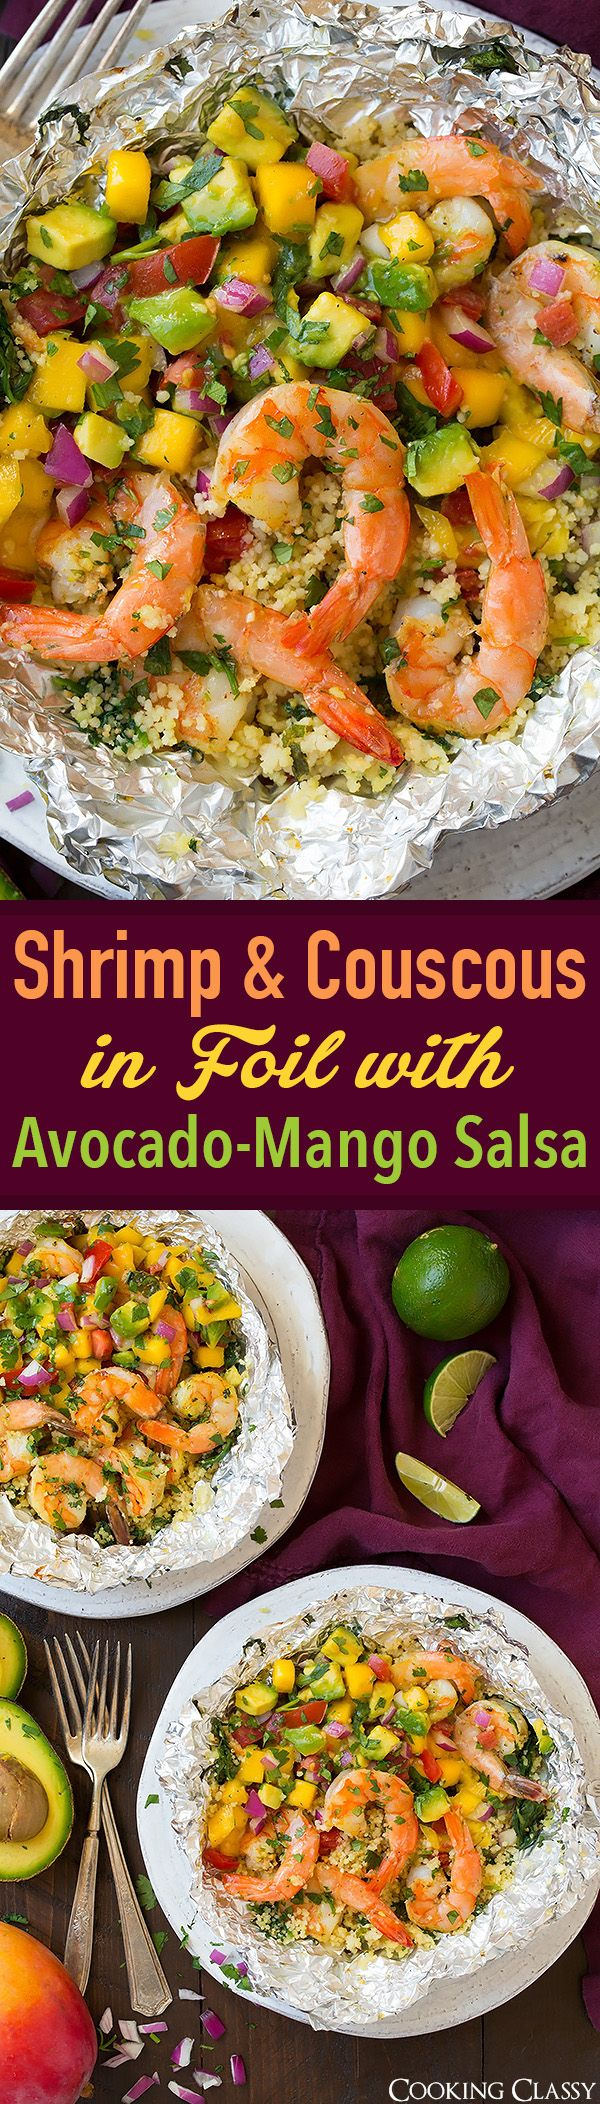 Shrimp and Couscous Foil Packets with Avocado-Mango Salsa - SO EASY and SO GOOD! Perfect summer meal!